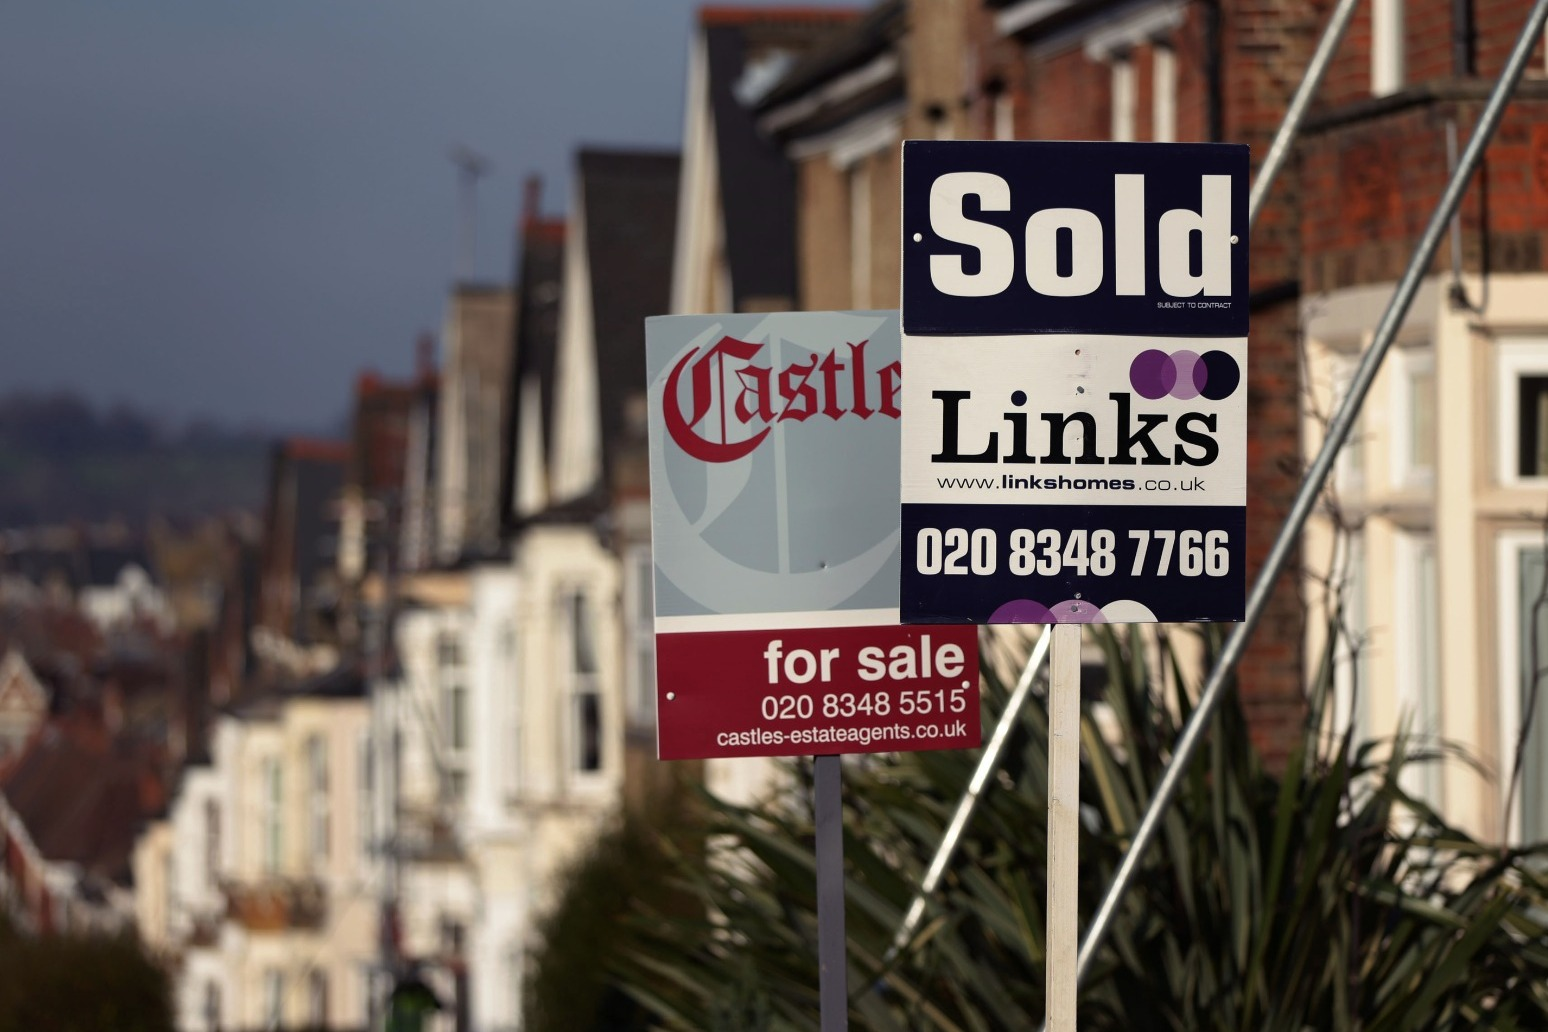 First-time buyers make a comeback and account for 3 in 10 home sales